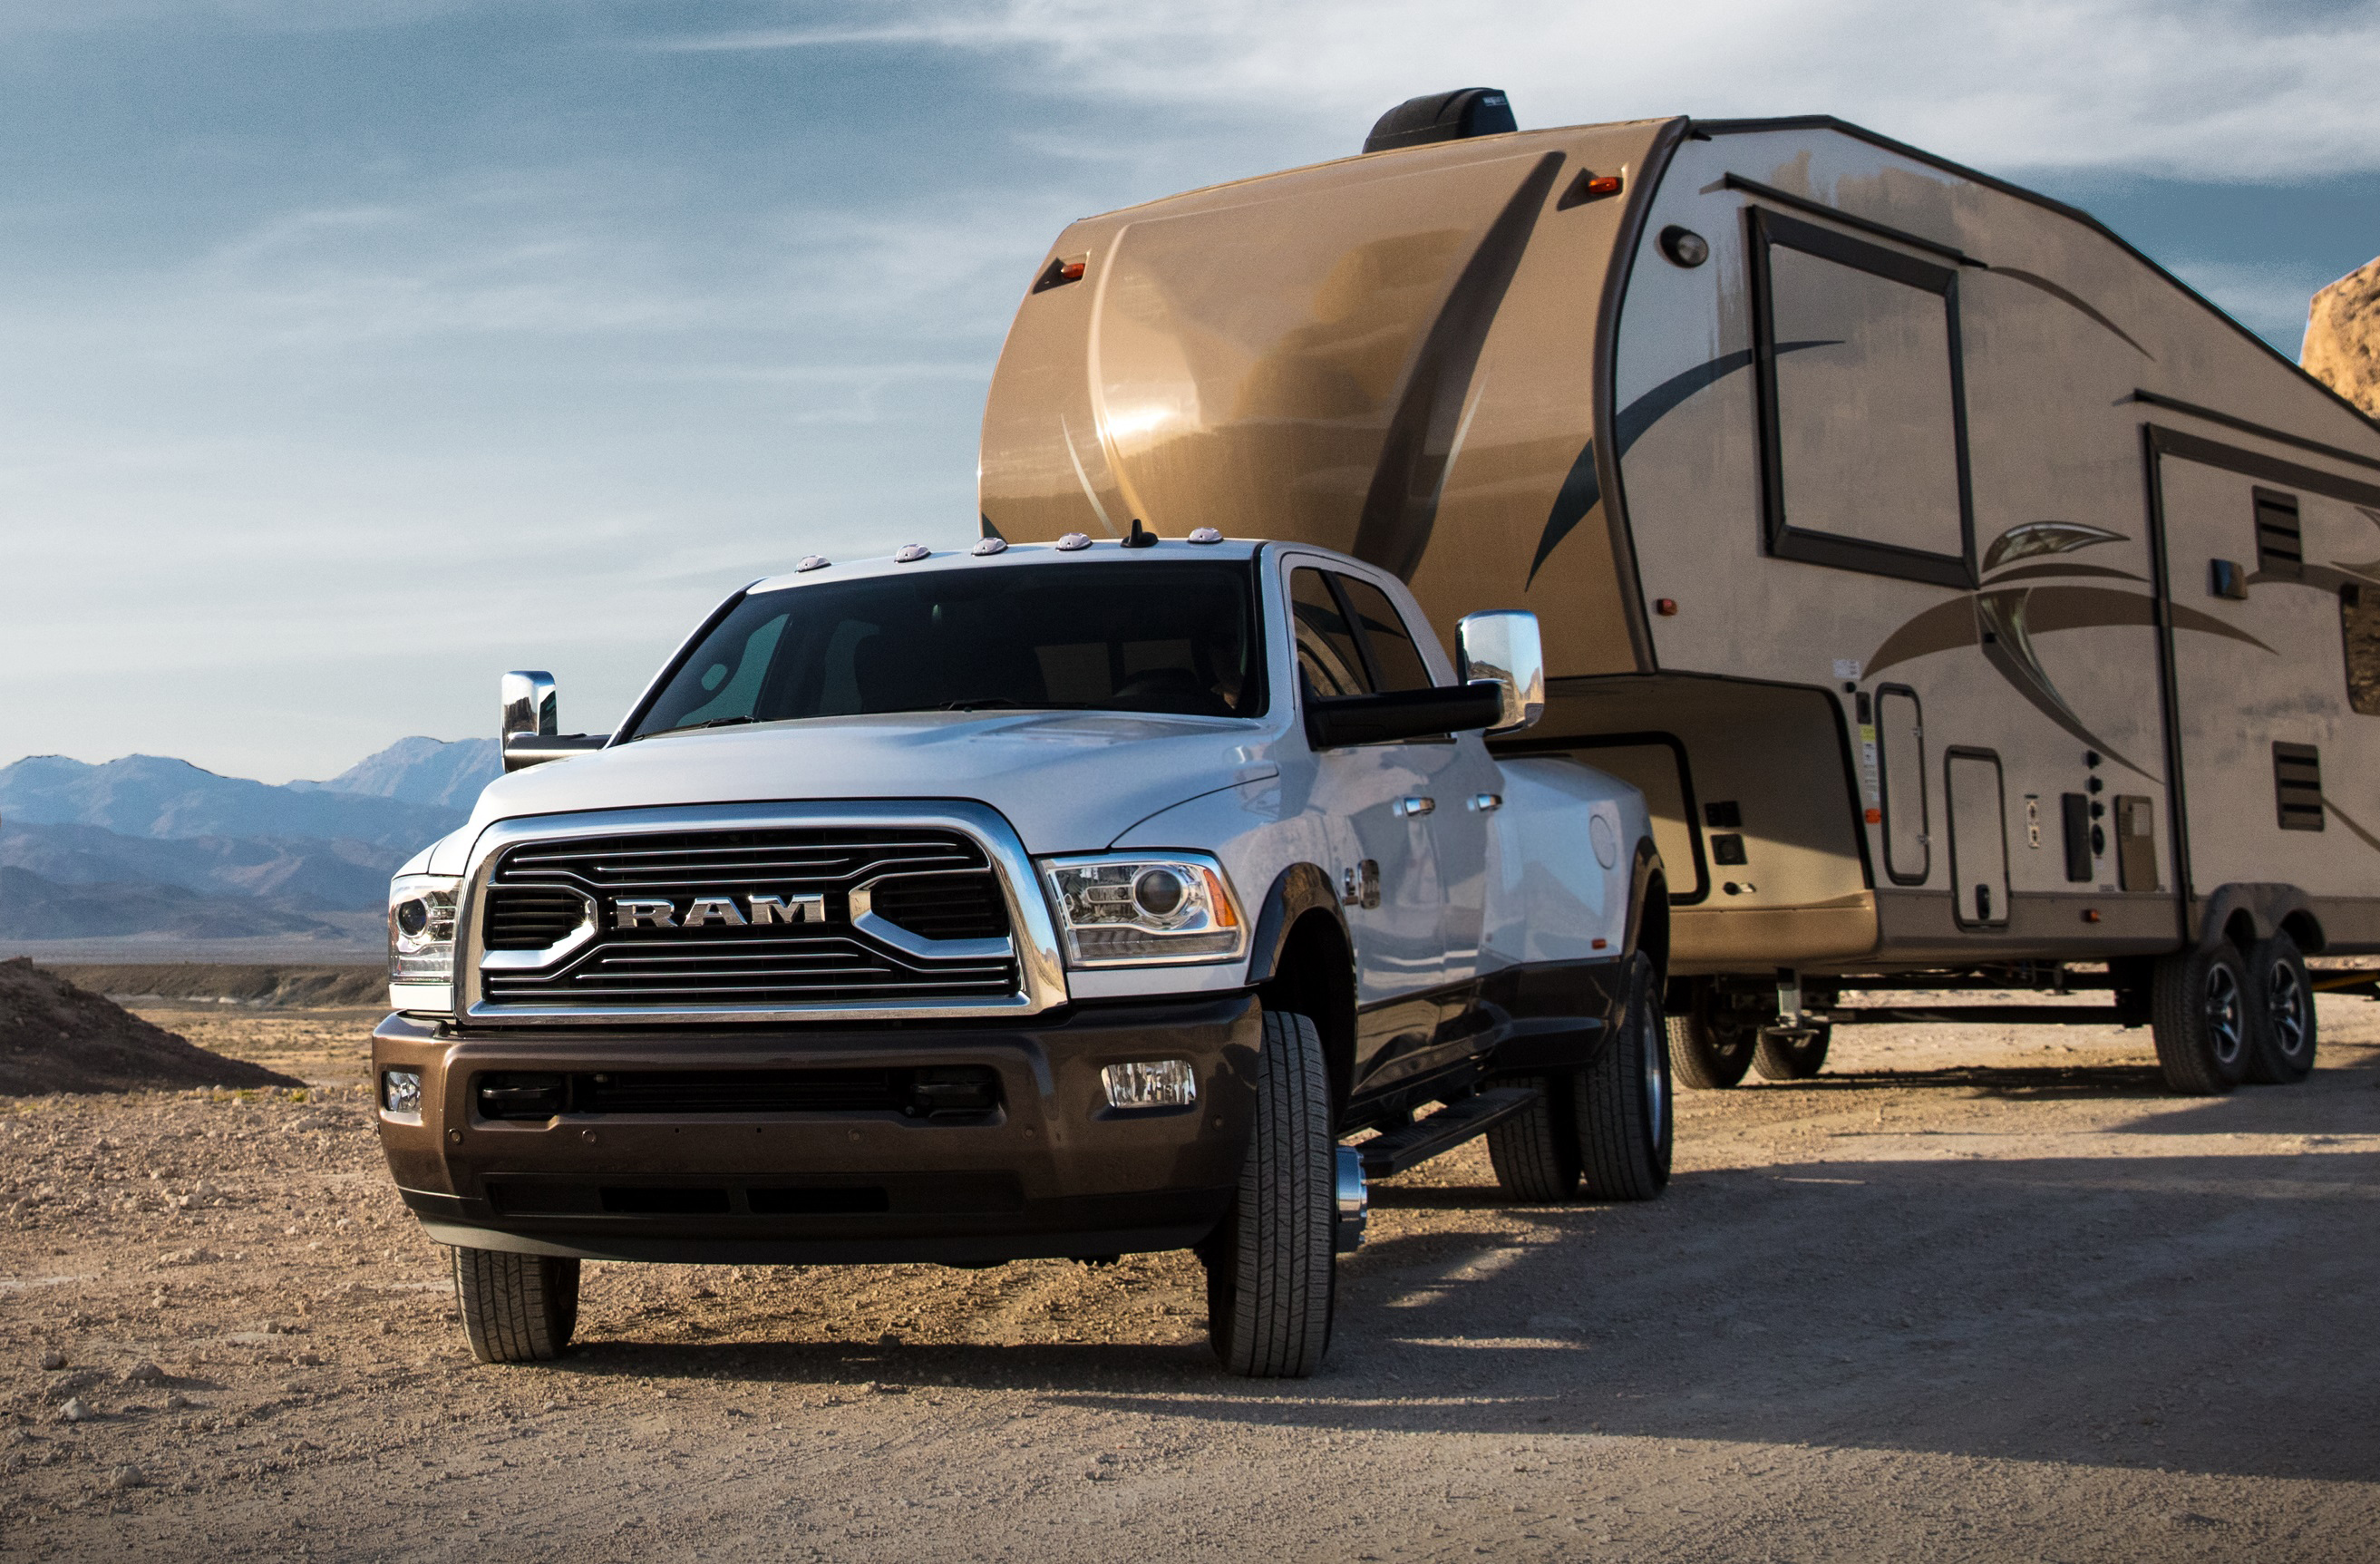 2018 Ram 3500 Heavy Duty | Top Speed. »